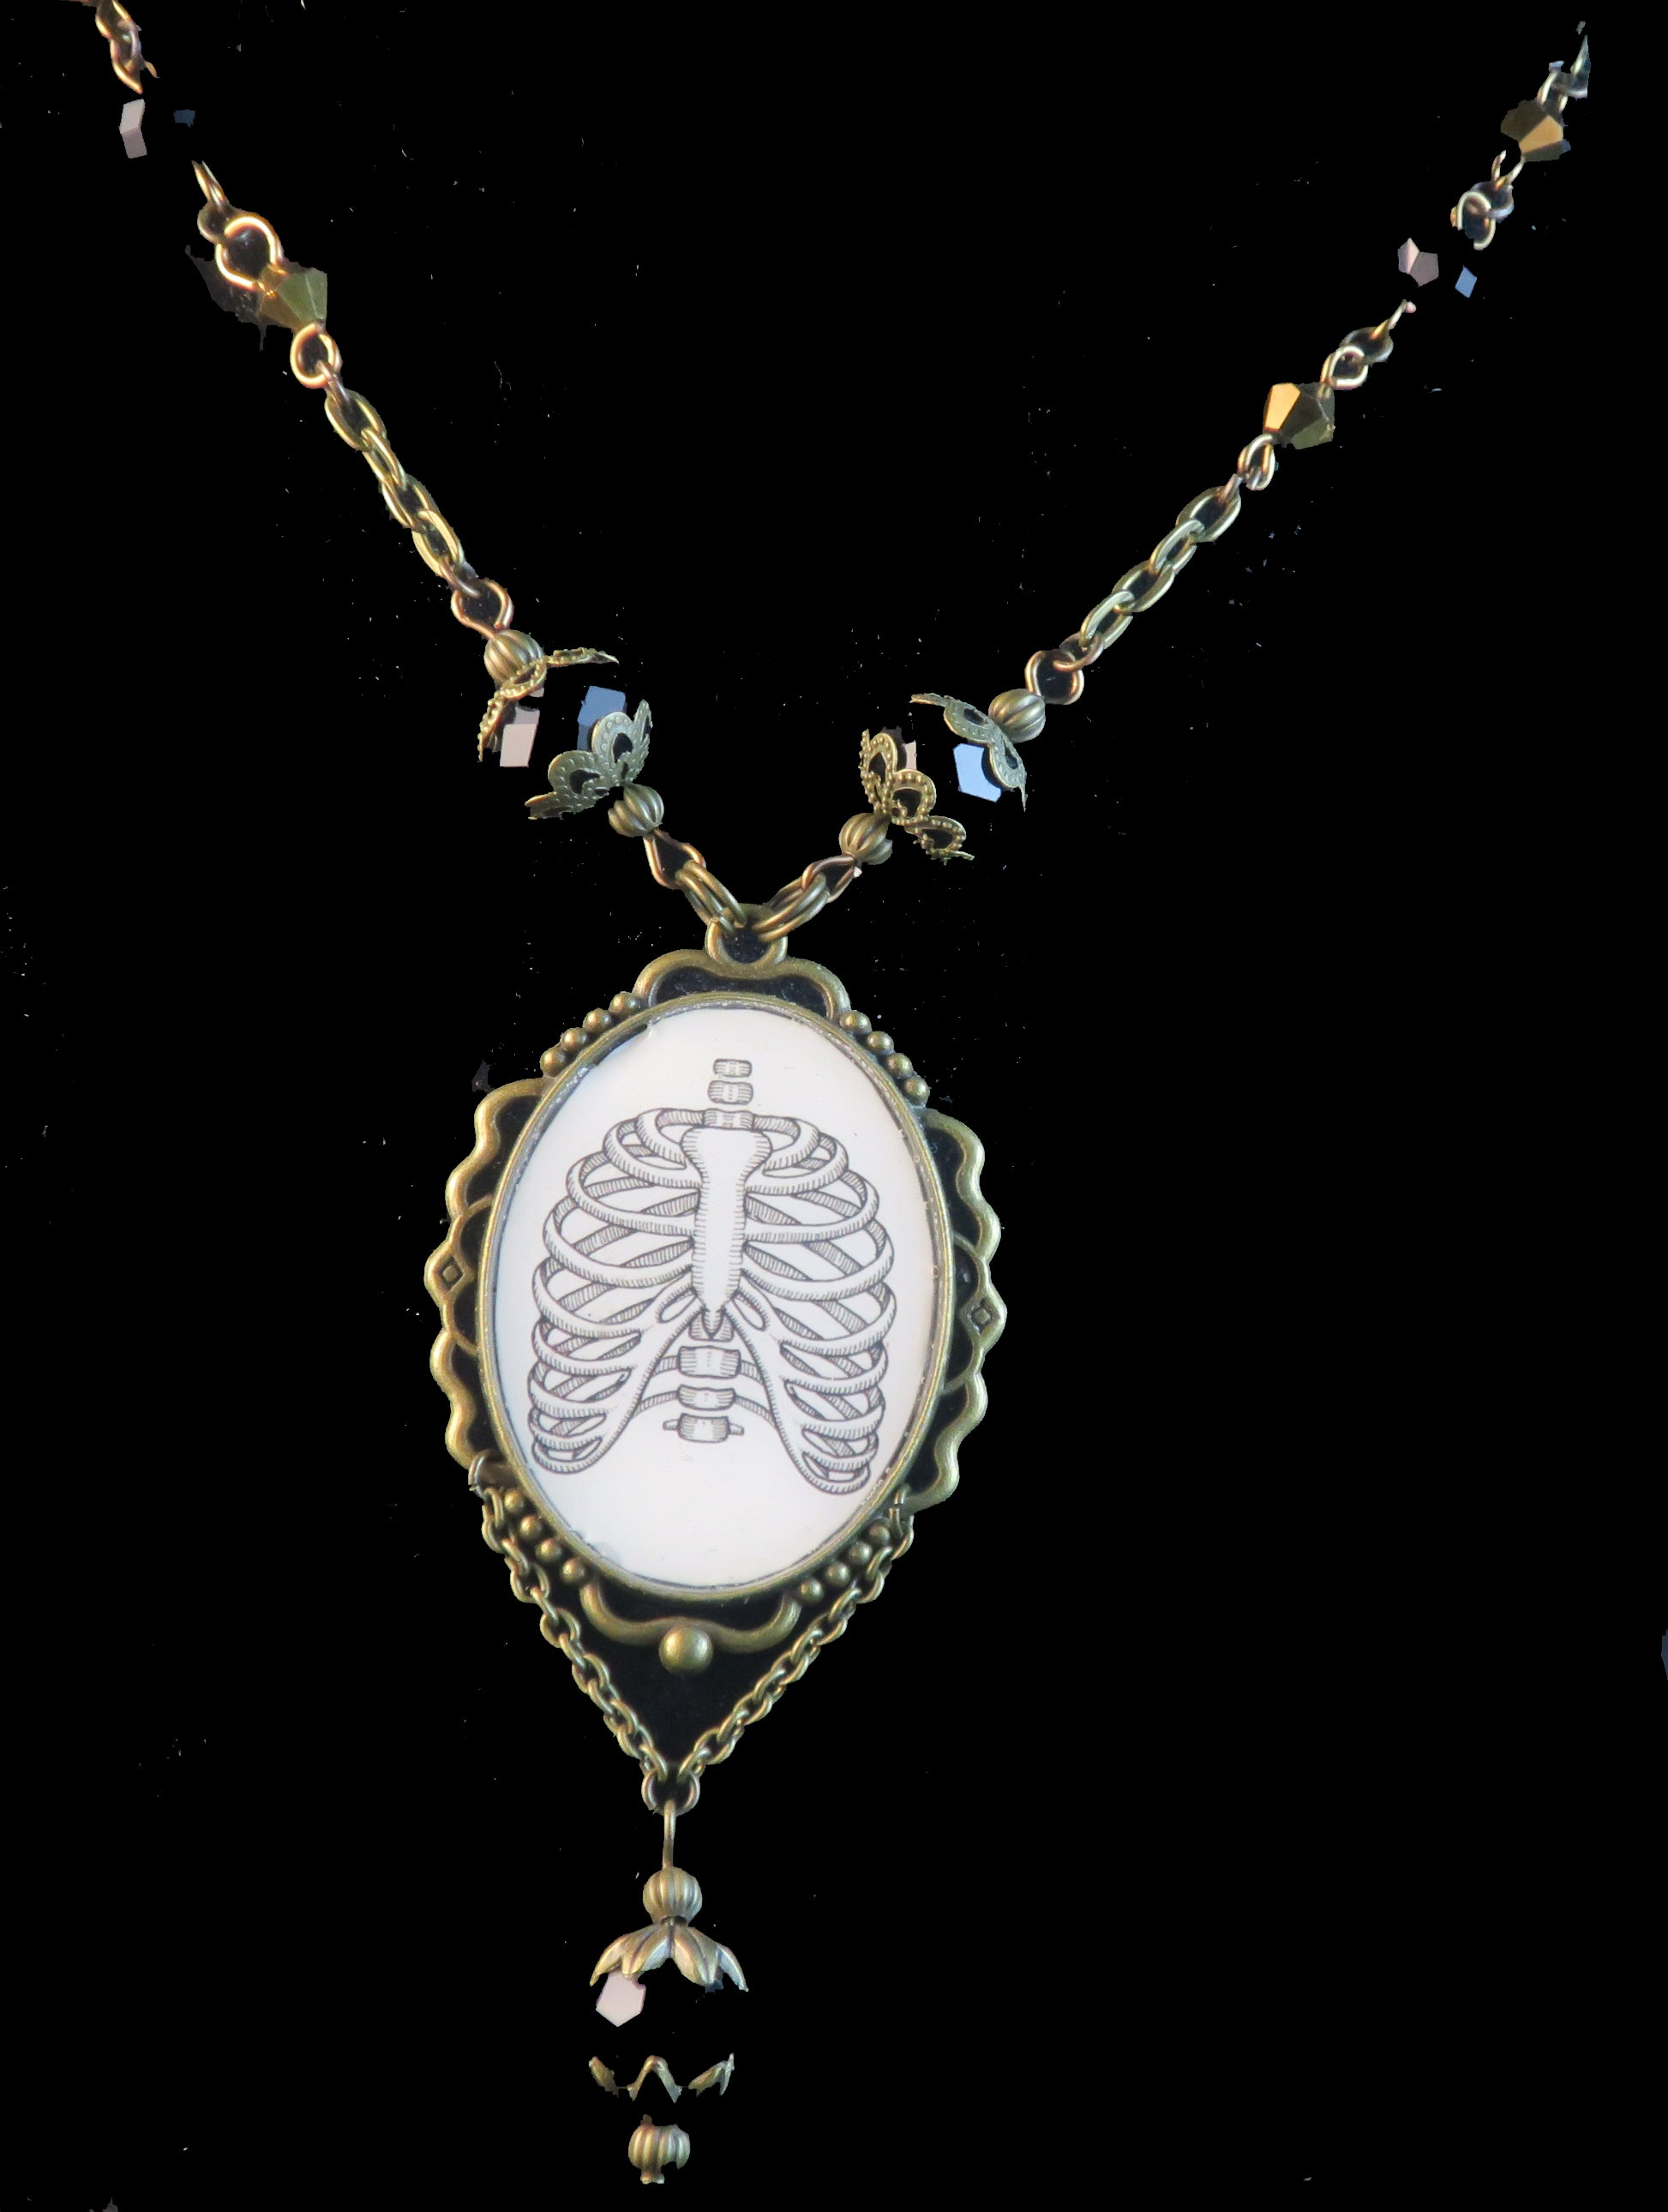 Human Ribs Pendant Necklace